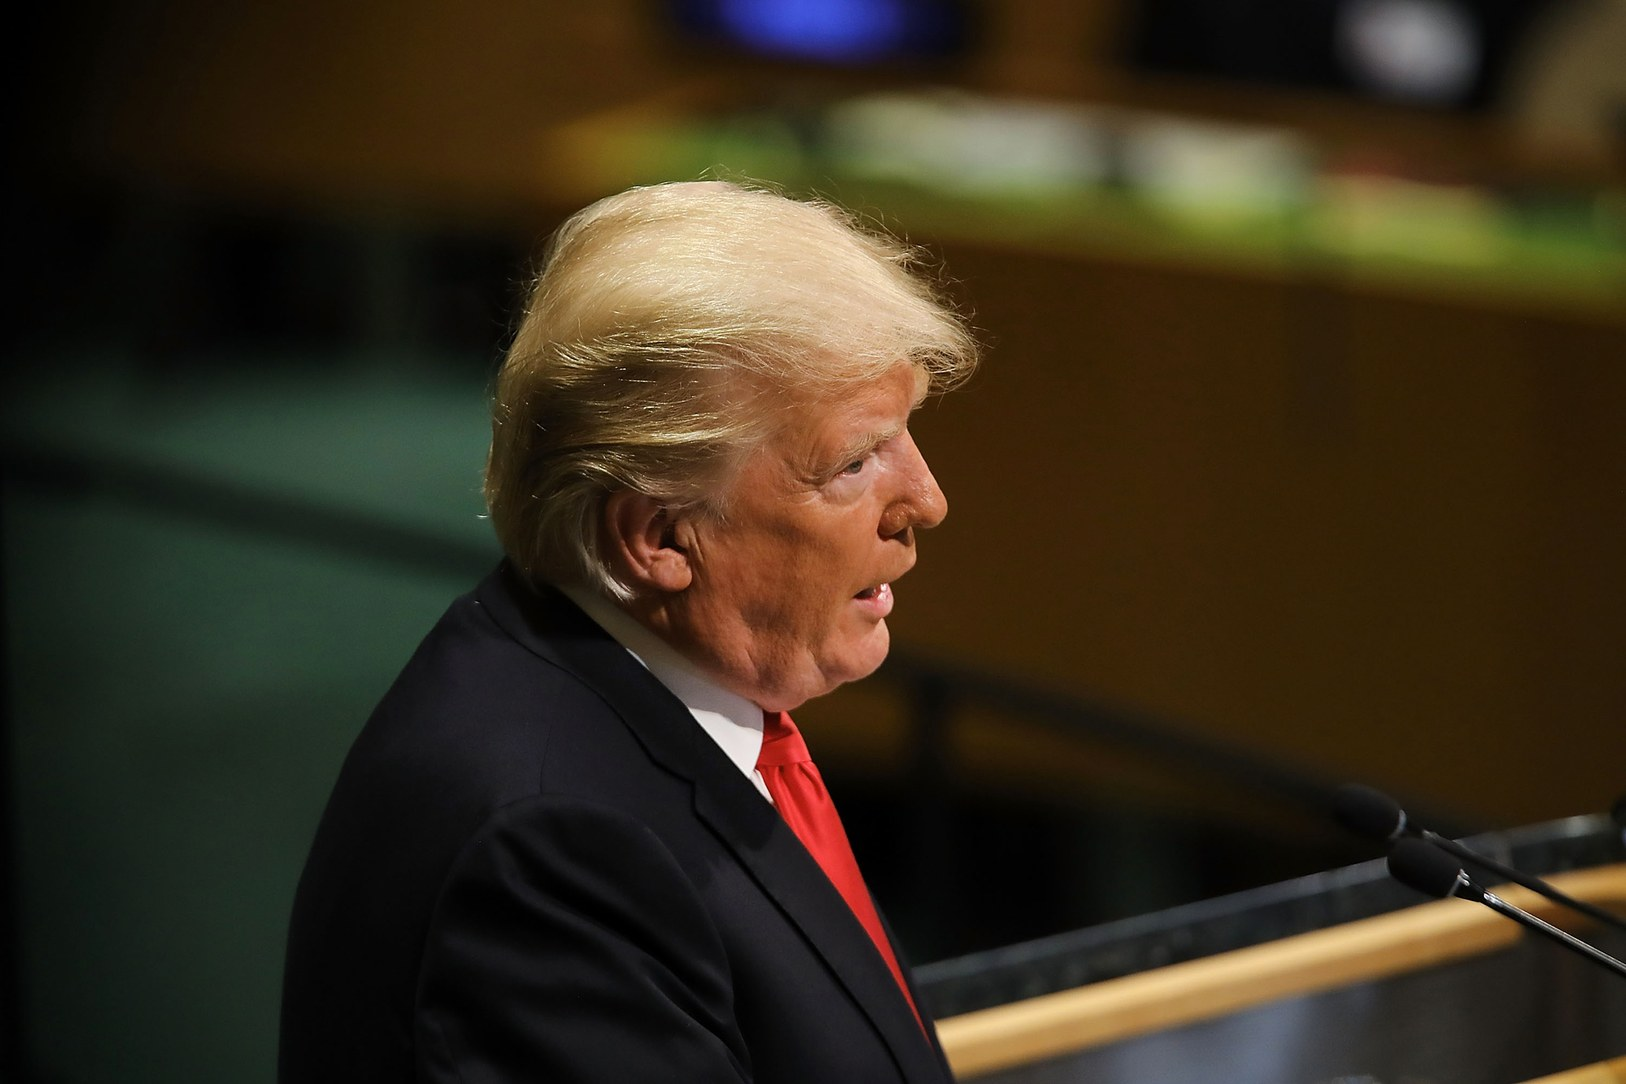 Trump Slams 'Globalism' At Un, Tells World 'We Embrace